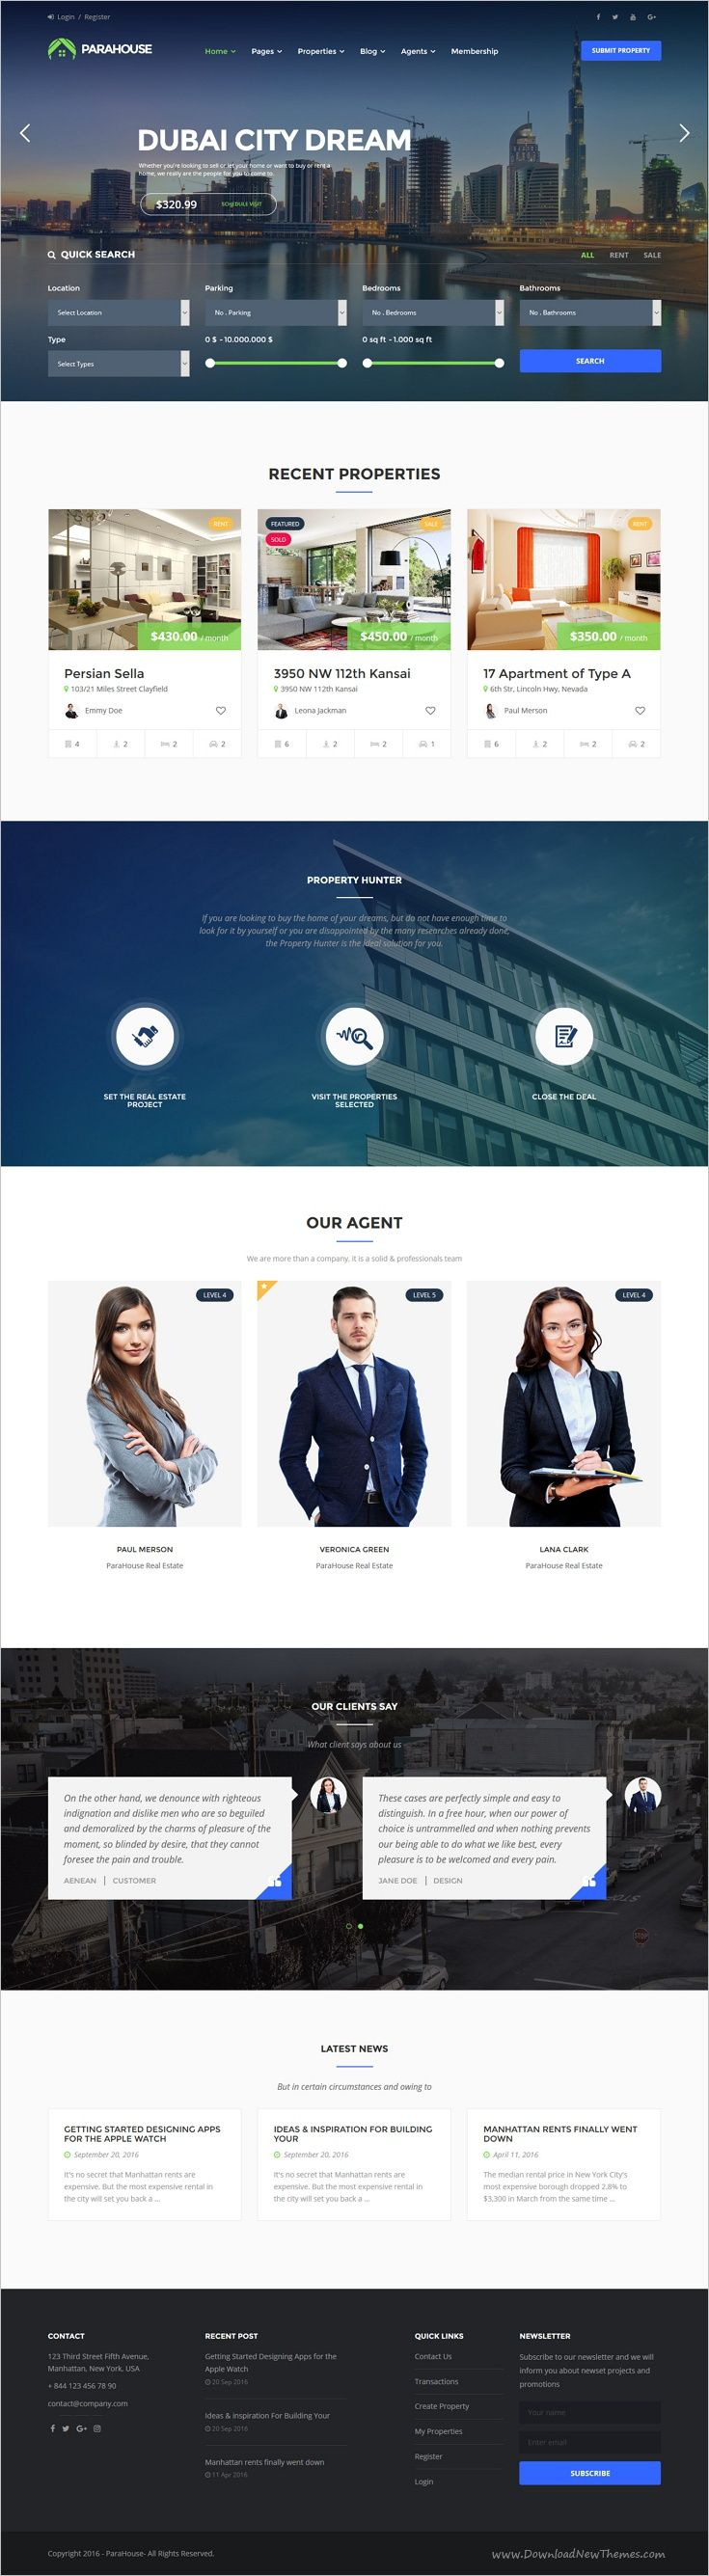 Parahouse is a wonderful responsive #WordPress theme for building up modern #realestate, #Property Agents, Rent Villa, Apartment websites download now➩ https://themeforest.net/item/parahouse-modern-real-estate-wordpress-theme/18150539?ref=Datasata